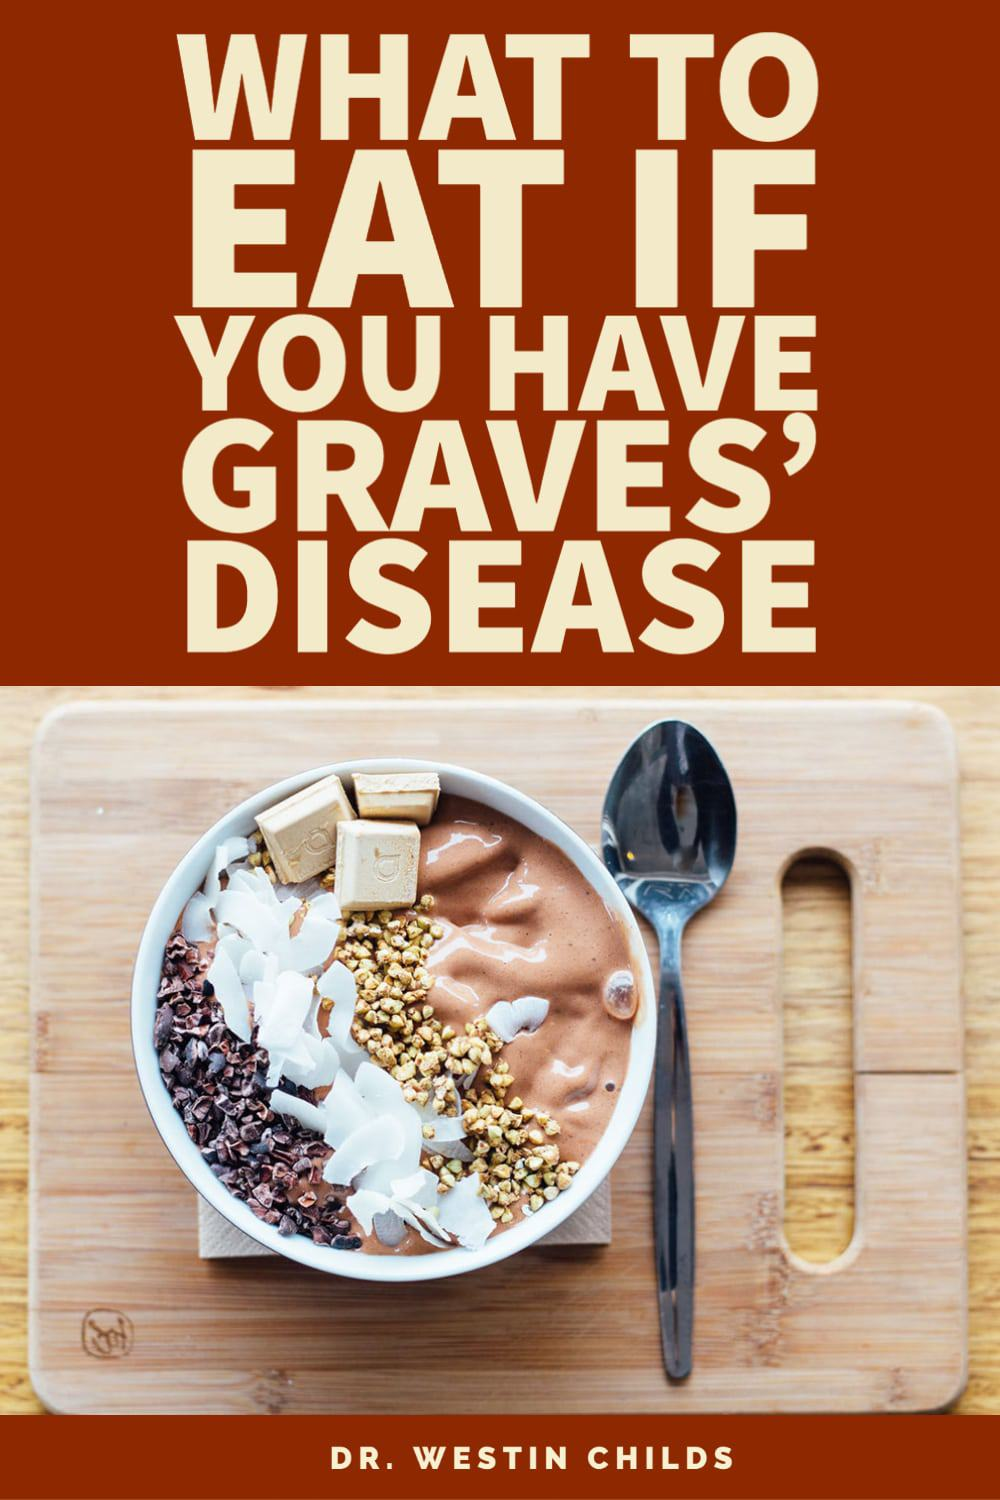 what to eat if you have graves disease